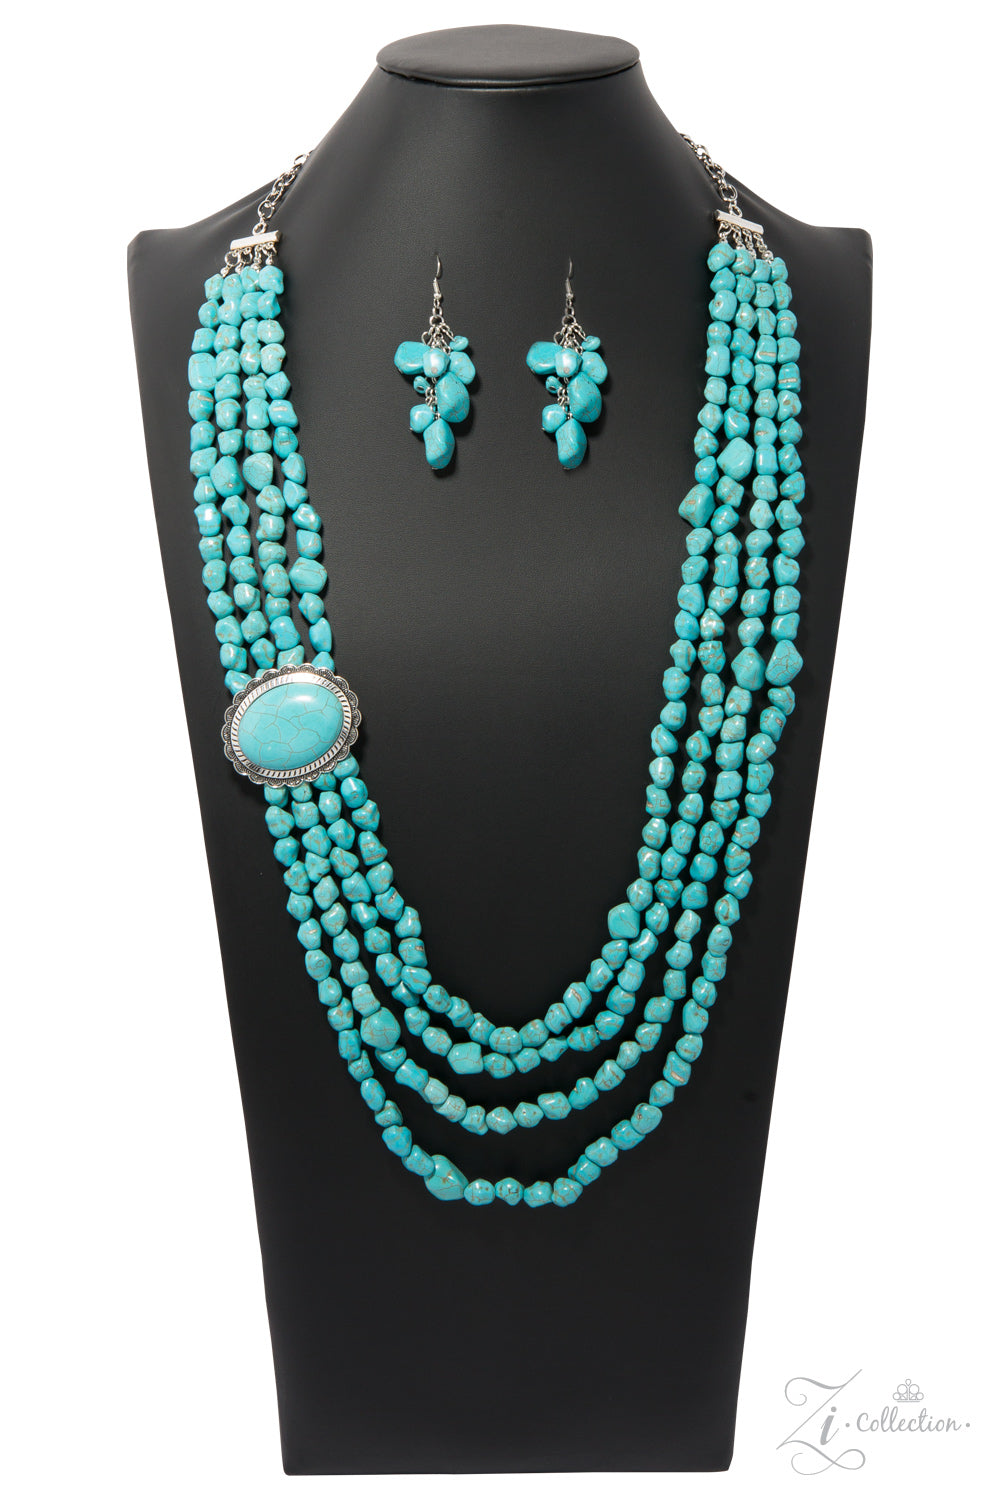 Maverick - Zi Collection Turquoise Necklace